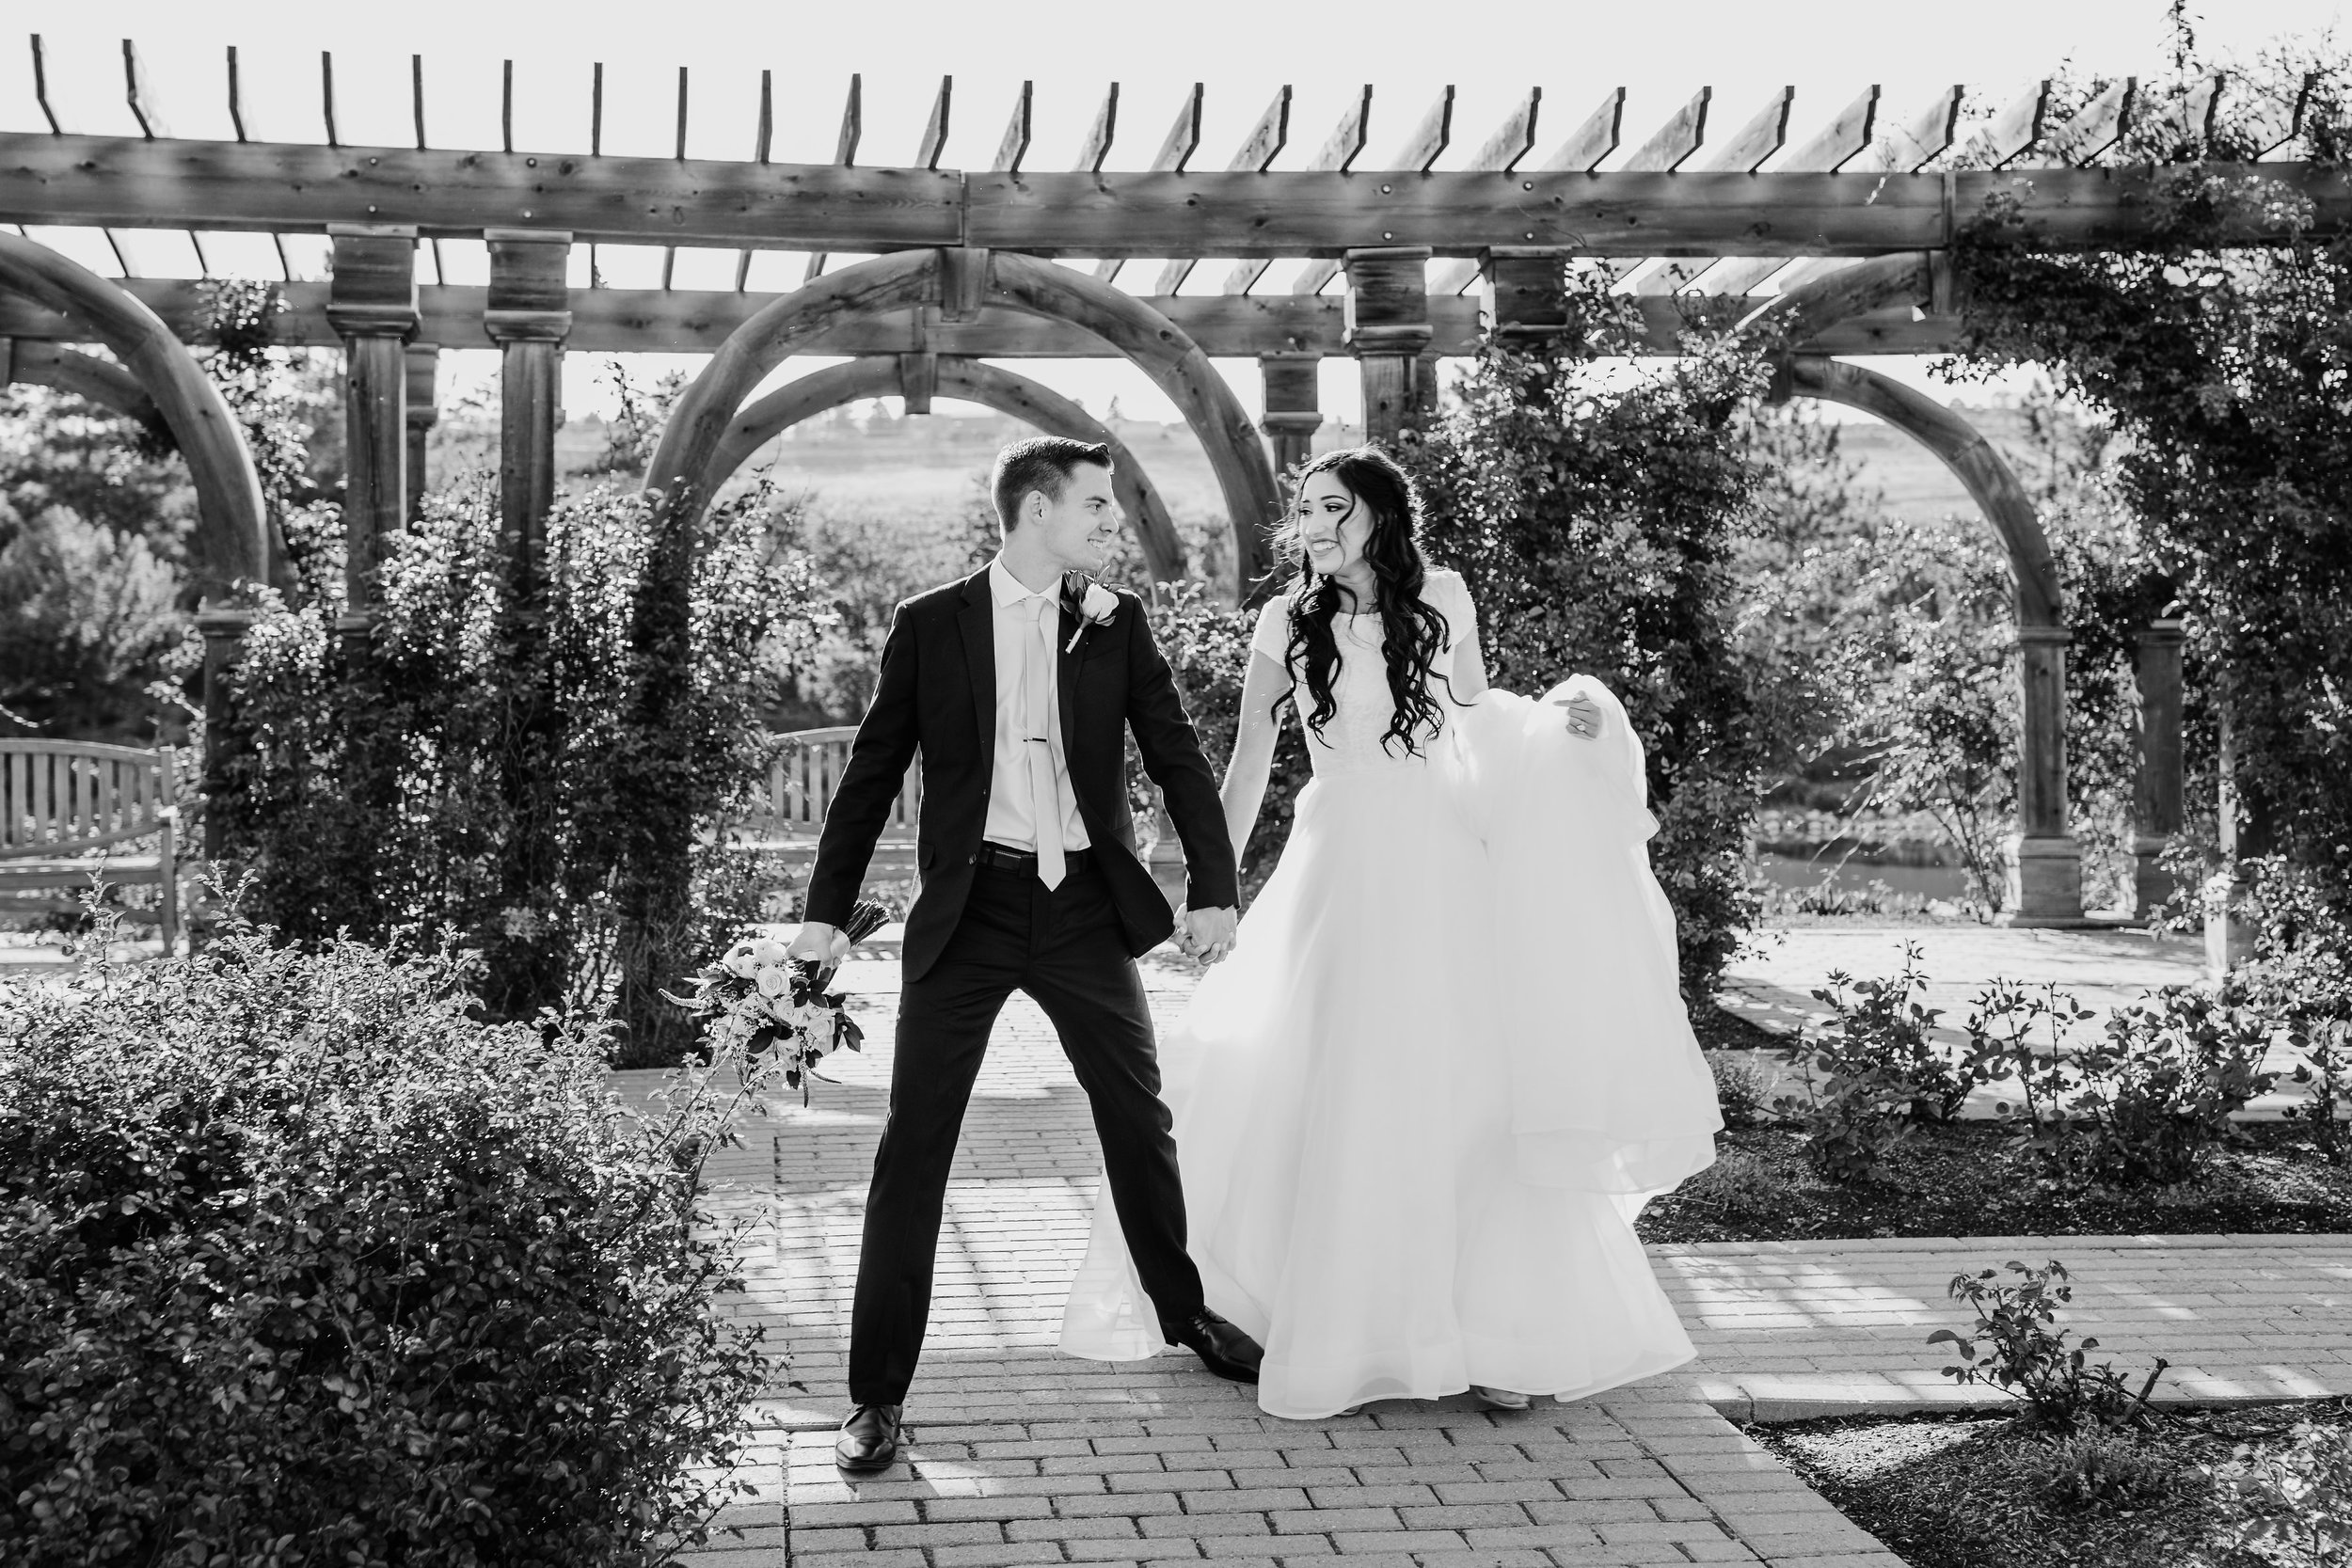 Professional Wedding photographer in cache valley utah holding hands outdoor garden summer wedding modest wedding dress